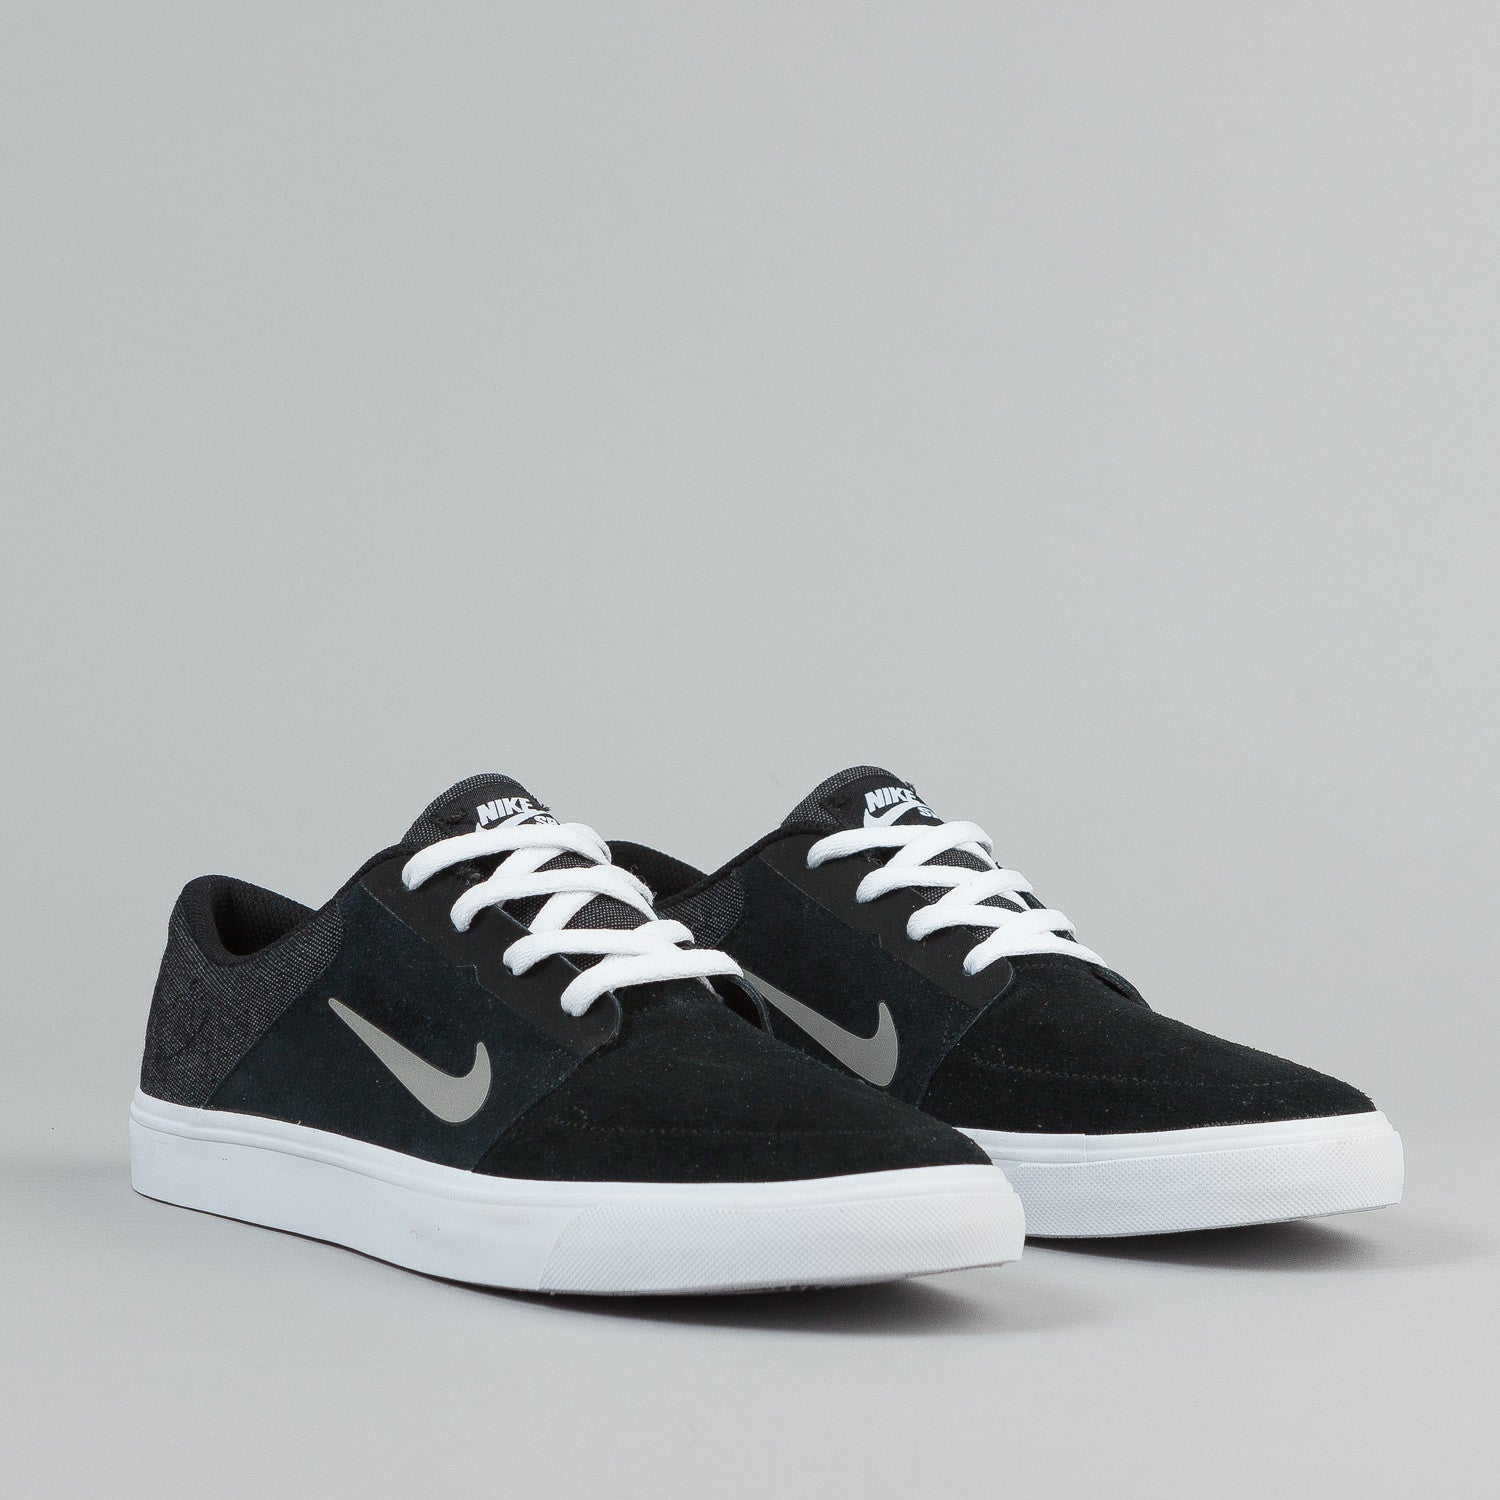 Nike SB Portmore Shoes - Black / Medium Grey / White